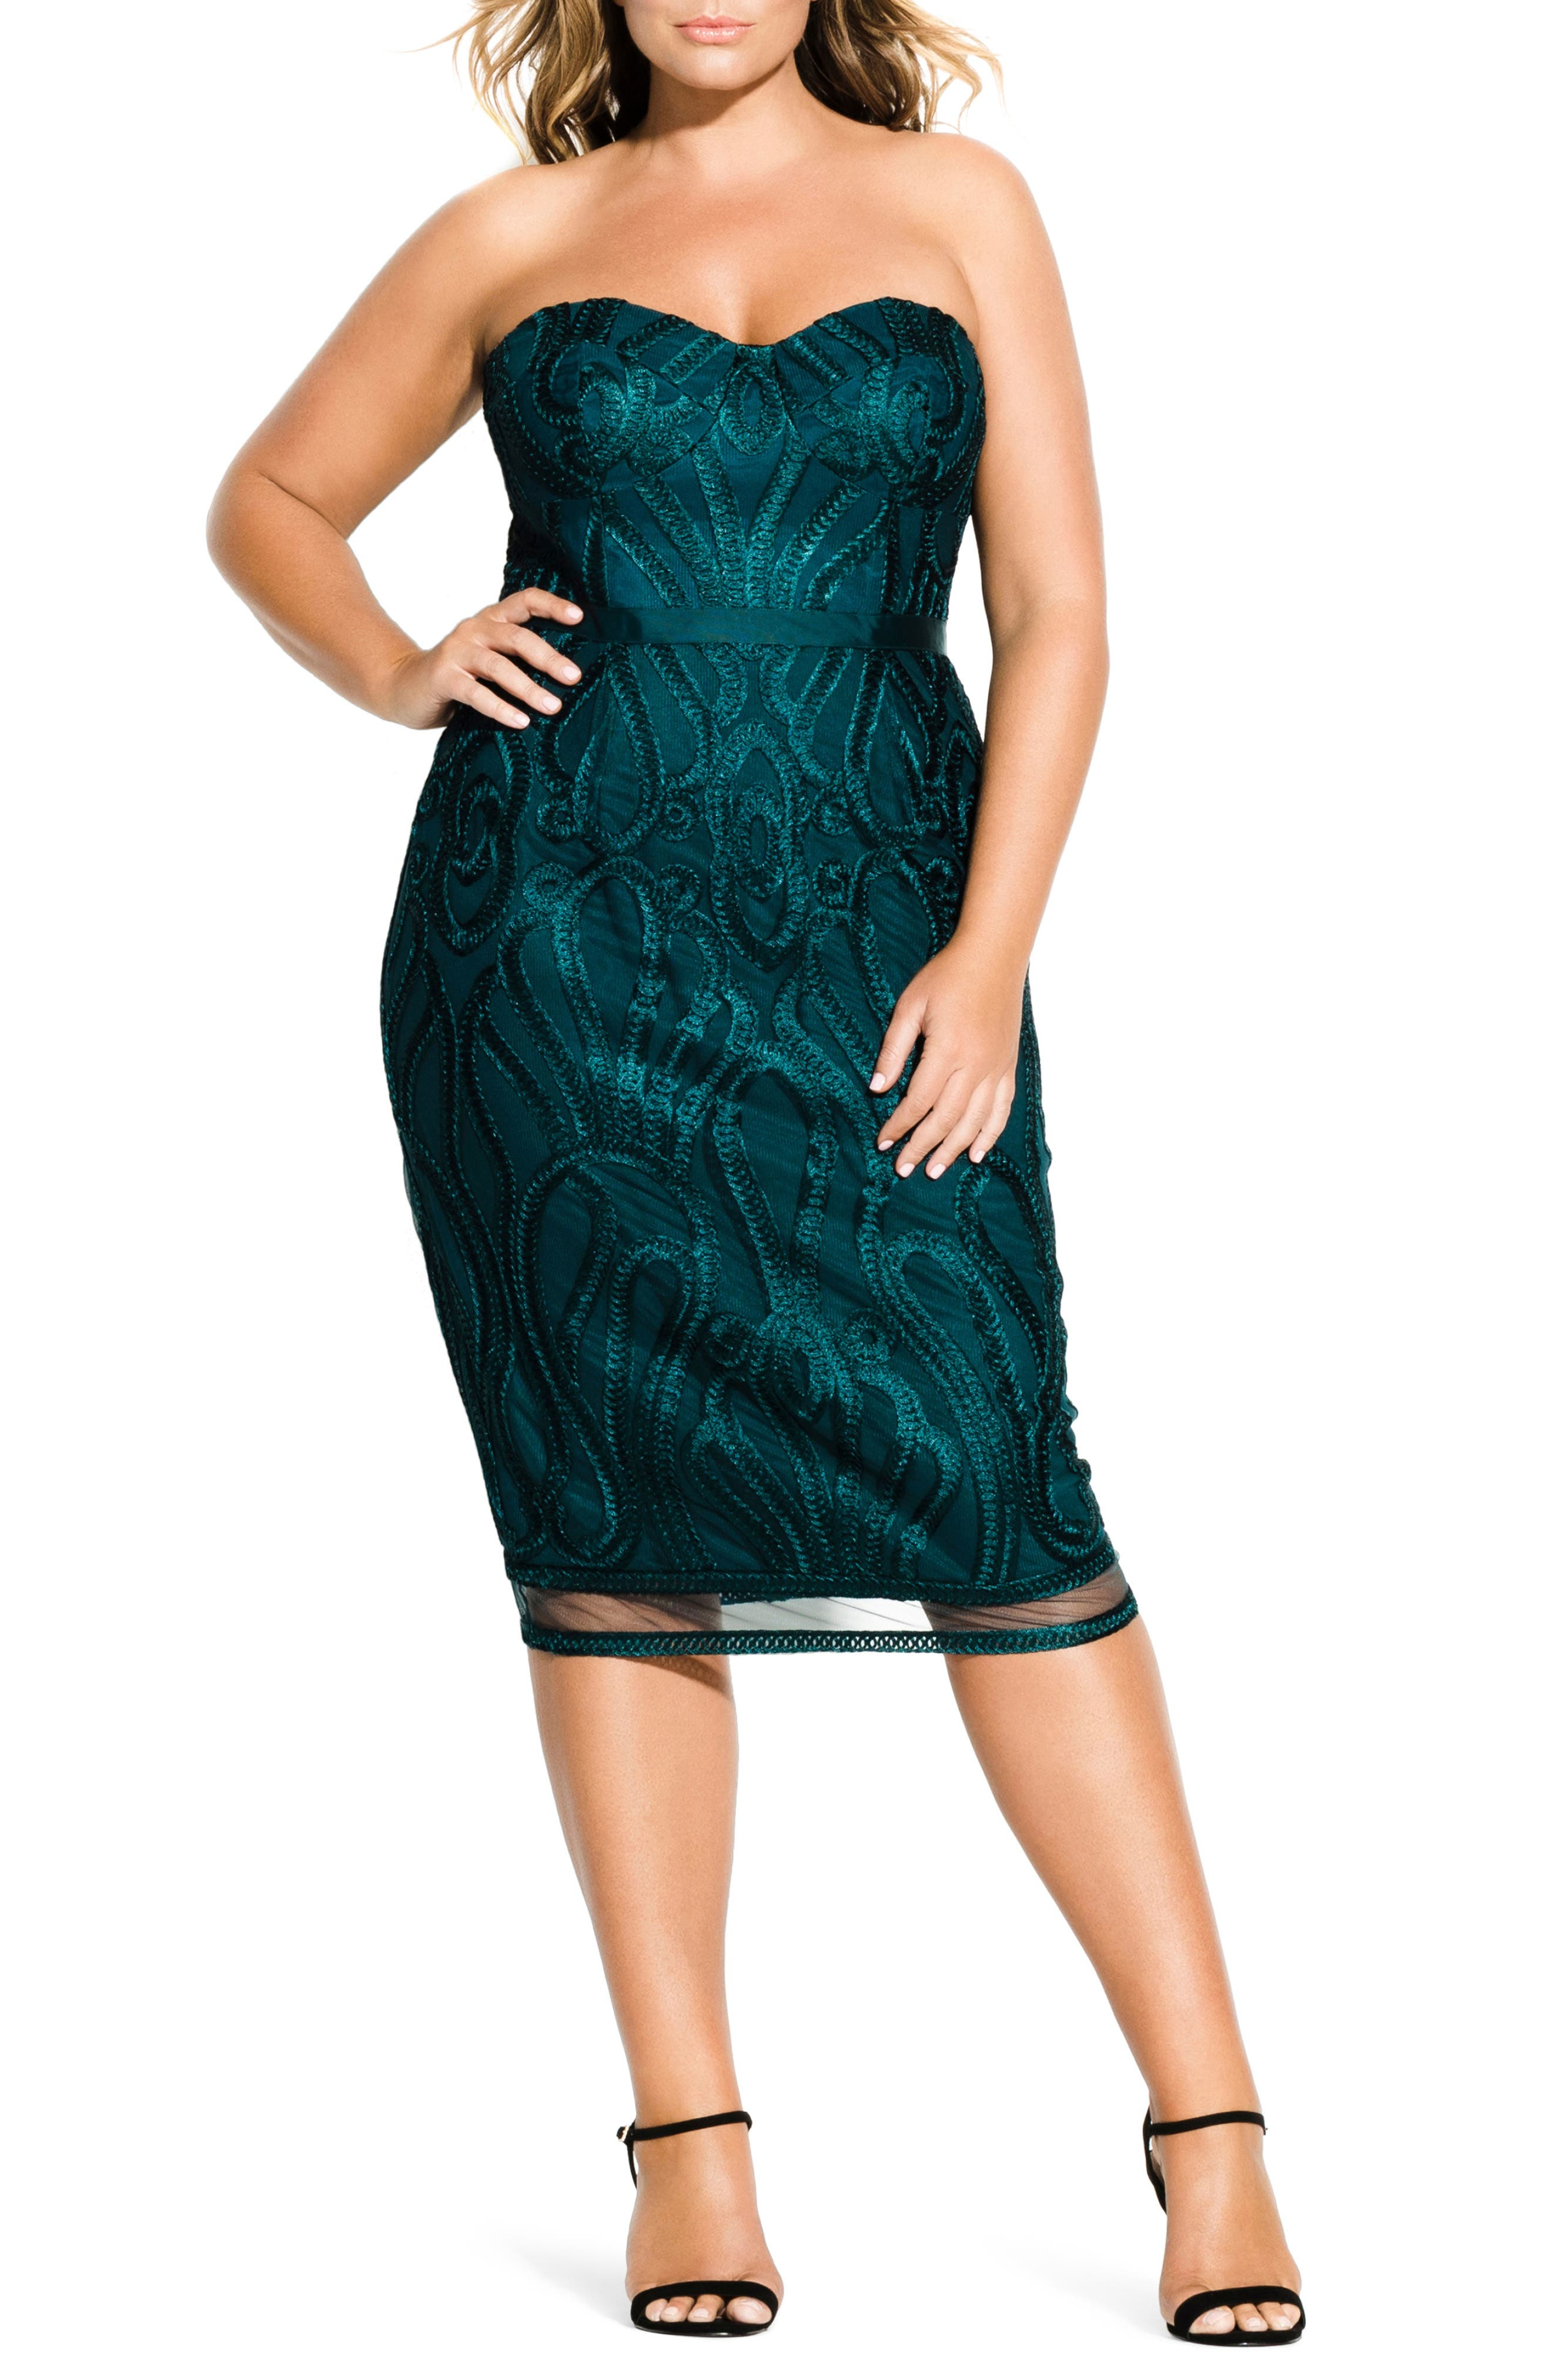 CITY CHIC Antonia Strapless Sheath Dress, Main, color, EMERALD